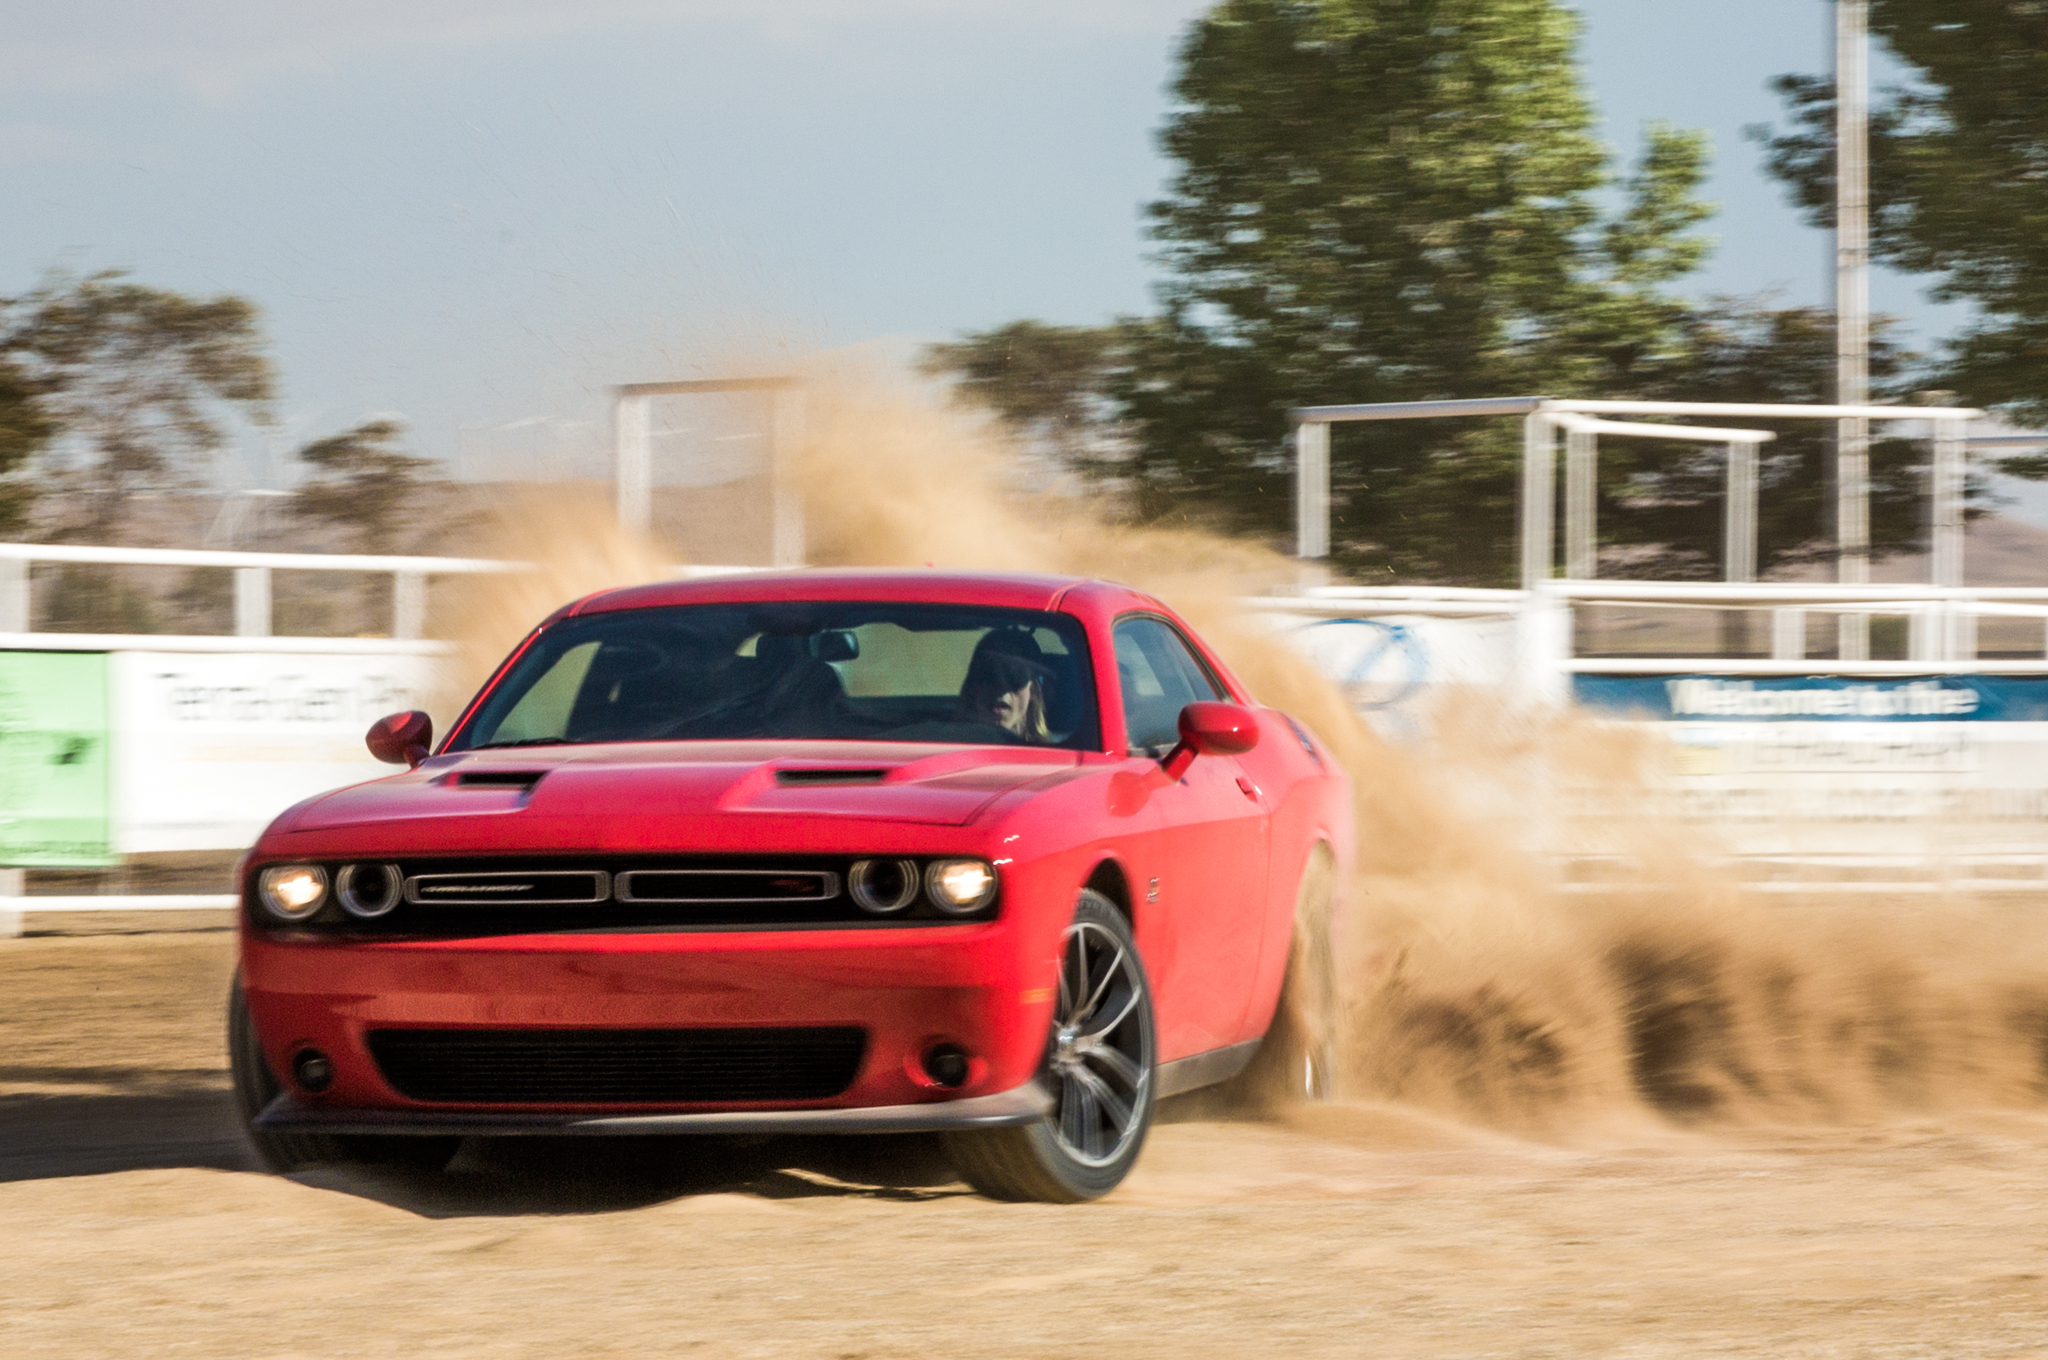 Totd Challenger Srt 392 Or R T Scat Pack Which Is The Better